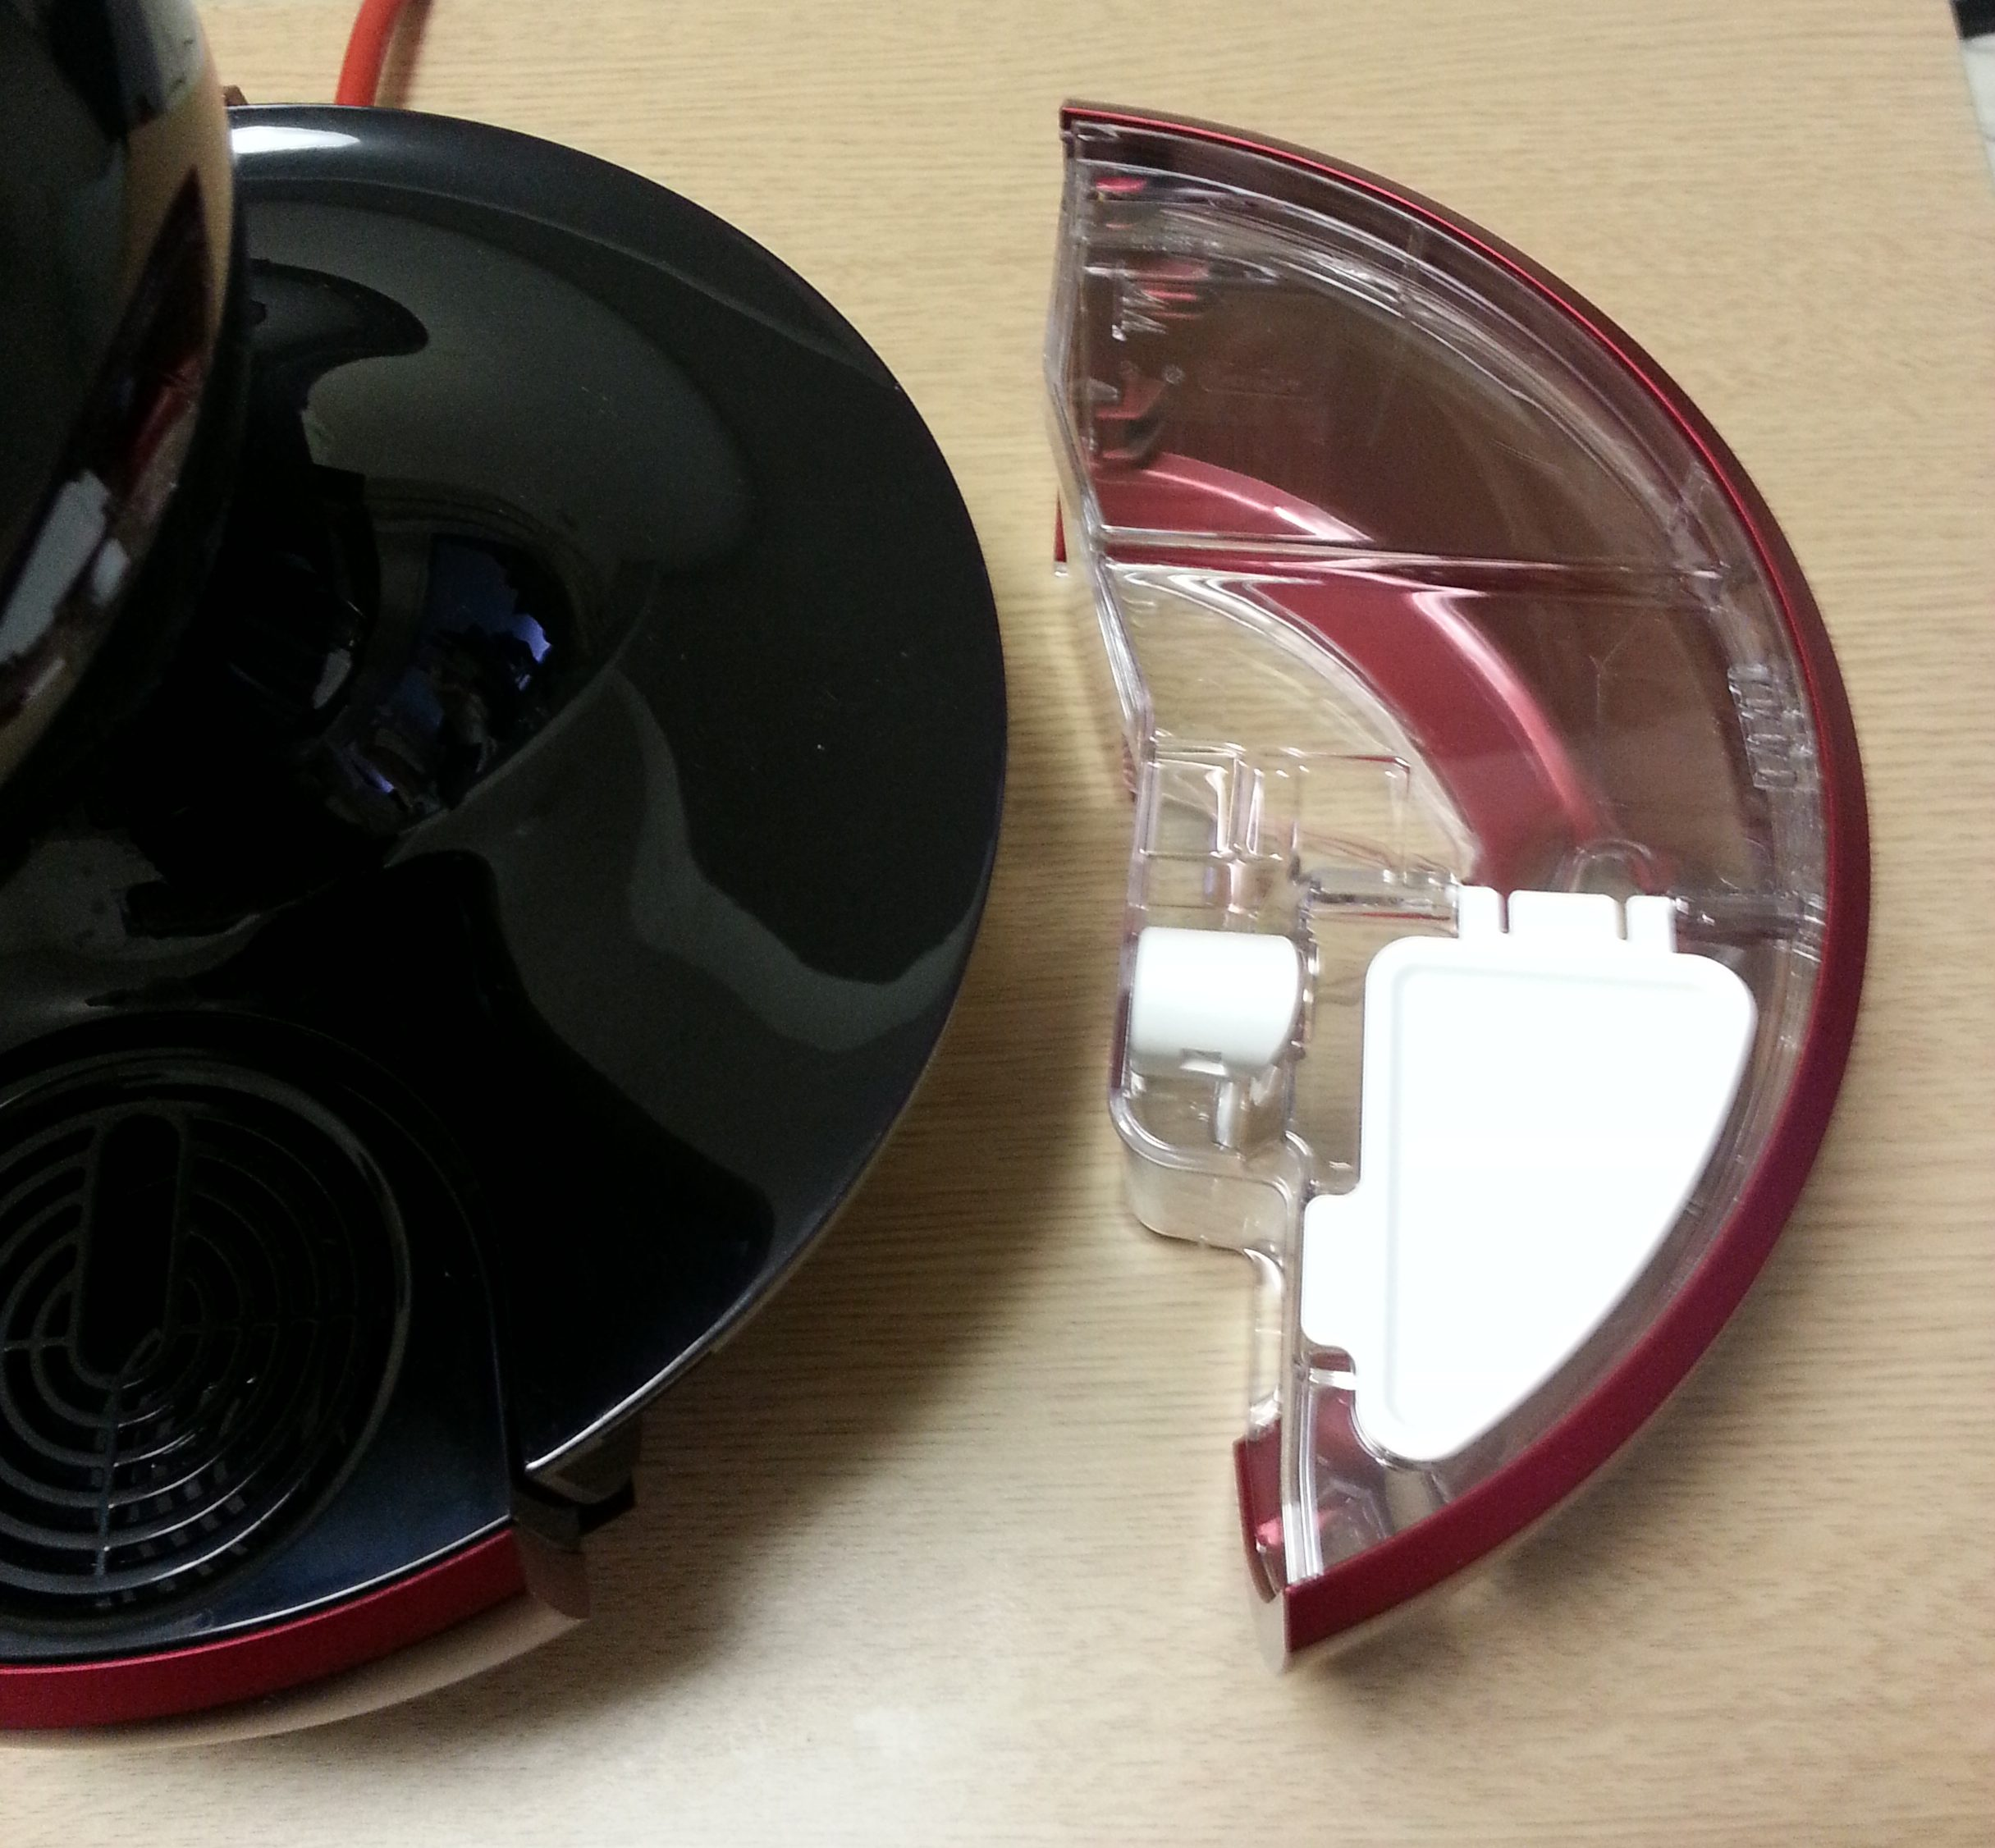 dolcegusto-drop-review9